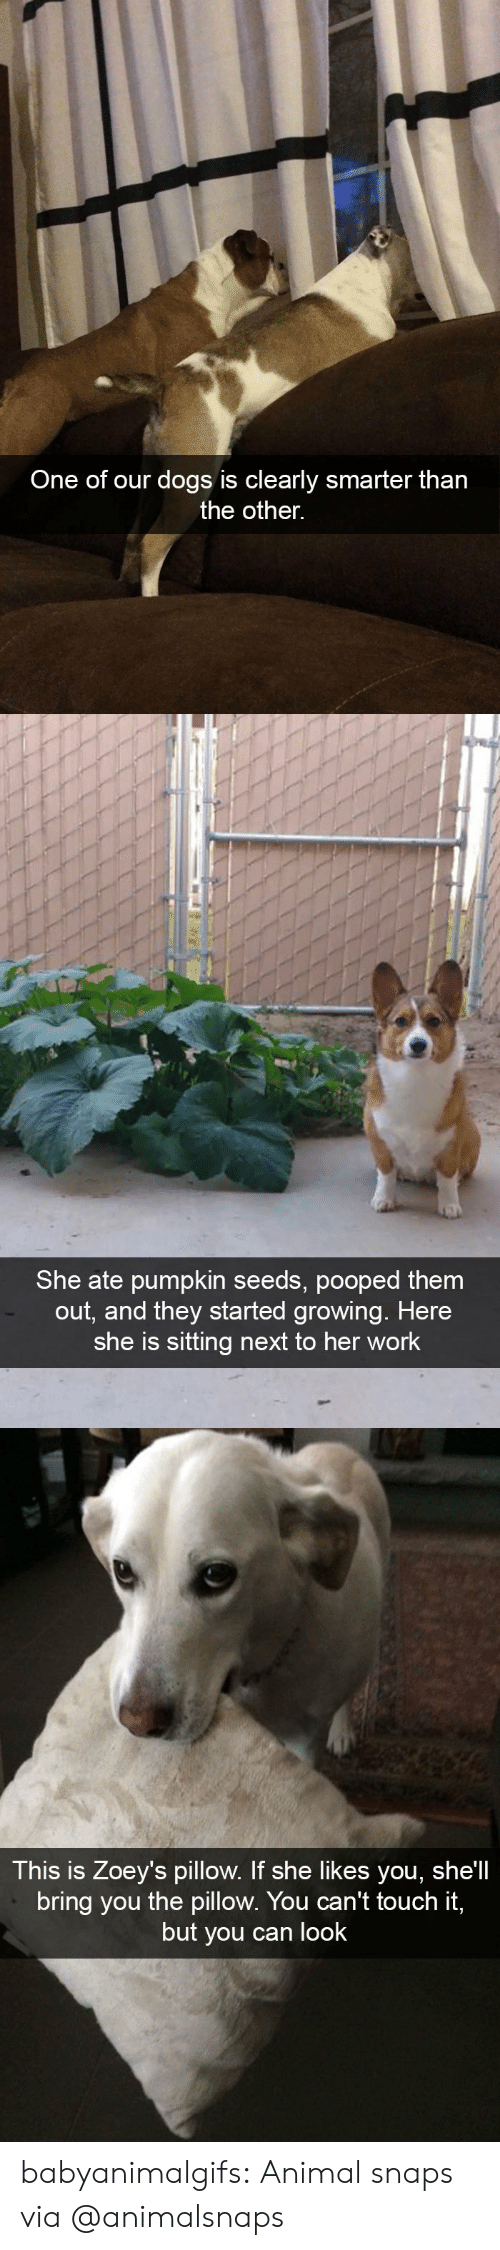 Shells: One of our dogs is clearly smarter tharn  the other.   She ate pumpkin seeds, pooped them  out, and they started growing. Here  she is sitting next to her work   This is Zoey's pillow. If she likes you, she'll  bring you the pillow. You can't touch it,  but you can look babyanimalgifs: Animal snaps via @animalsnaps